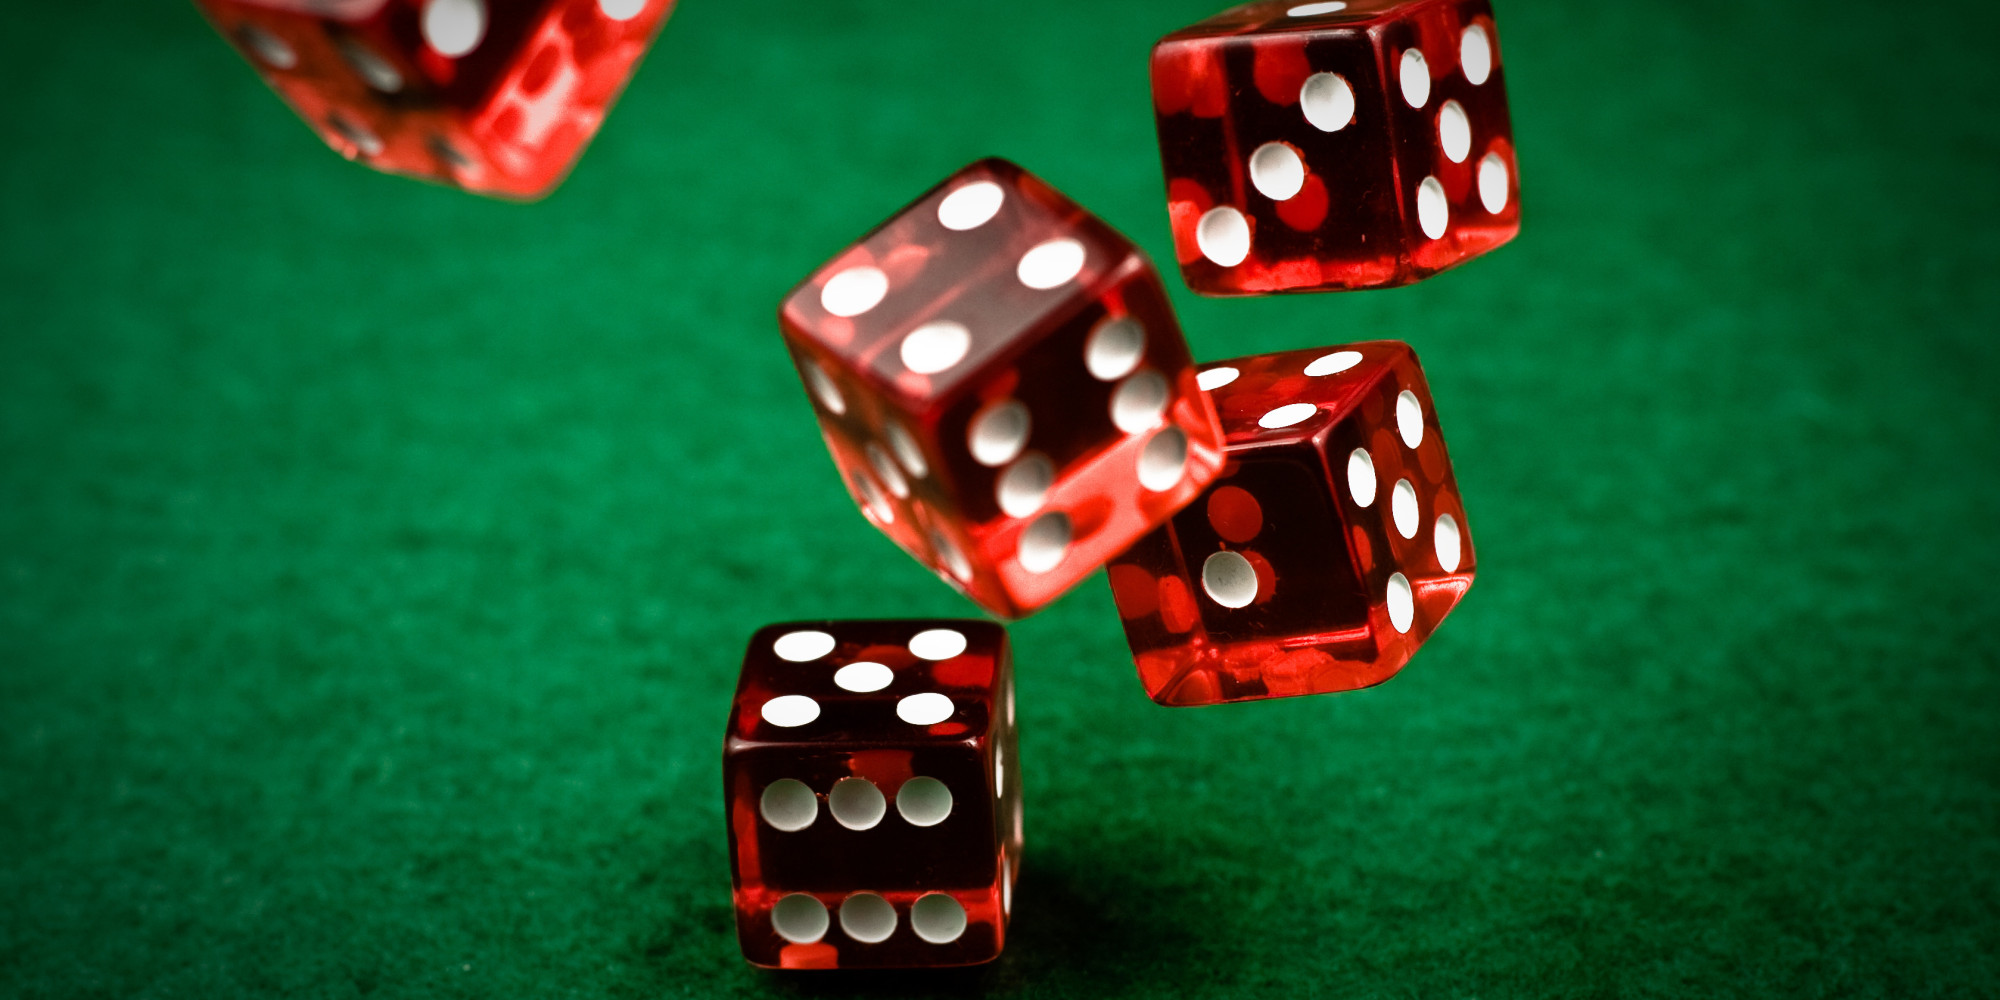 Some of the tips to play online gambling games effectively